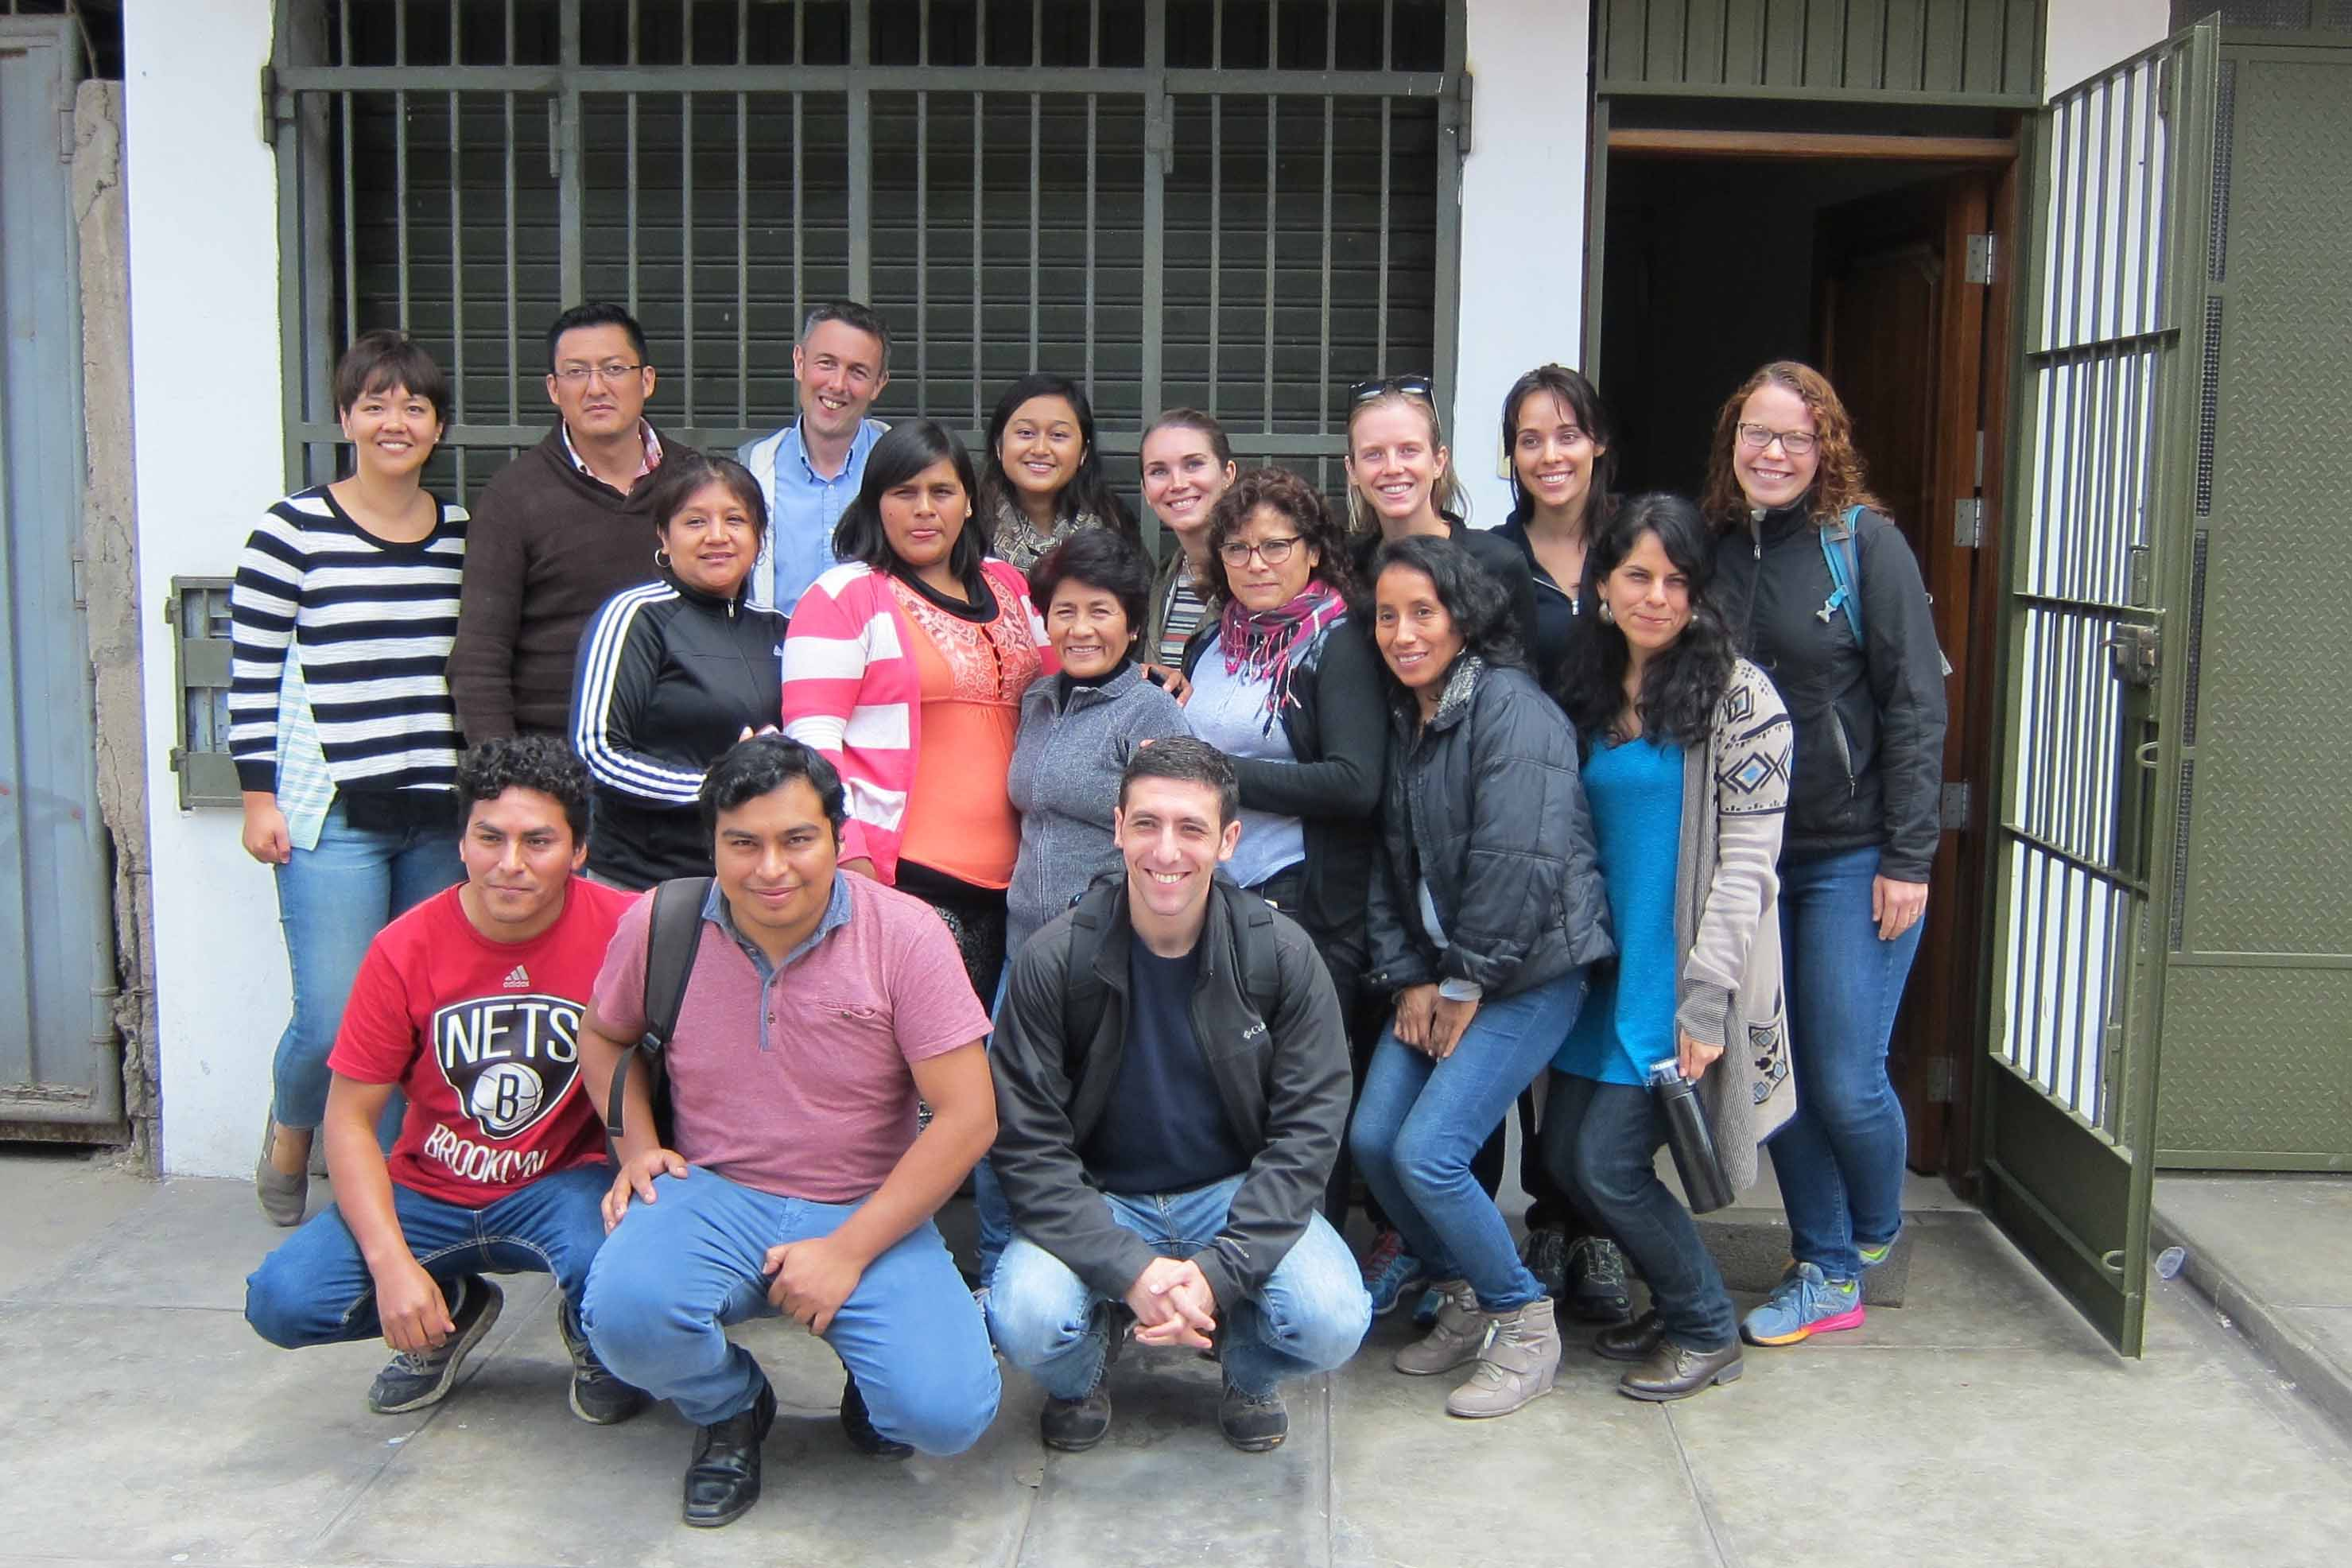 Johns Hopkins + UCL in Peru - ABPRISMA team - Latin America